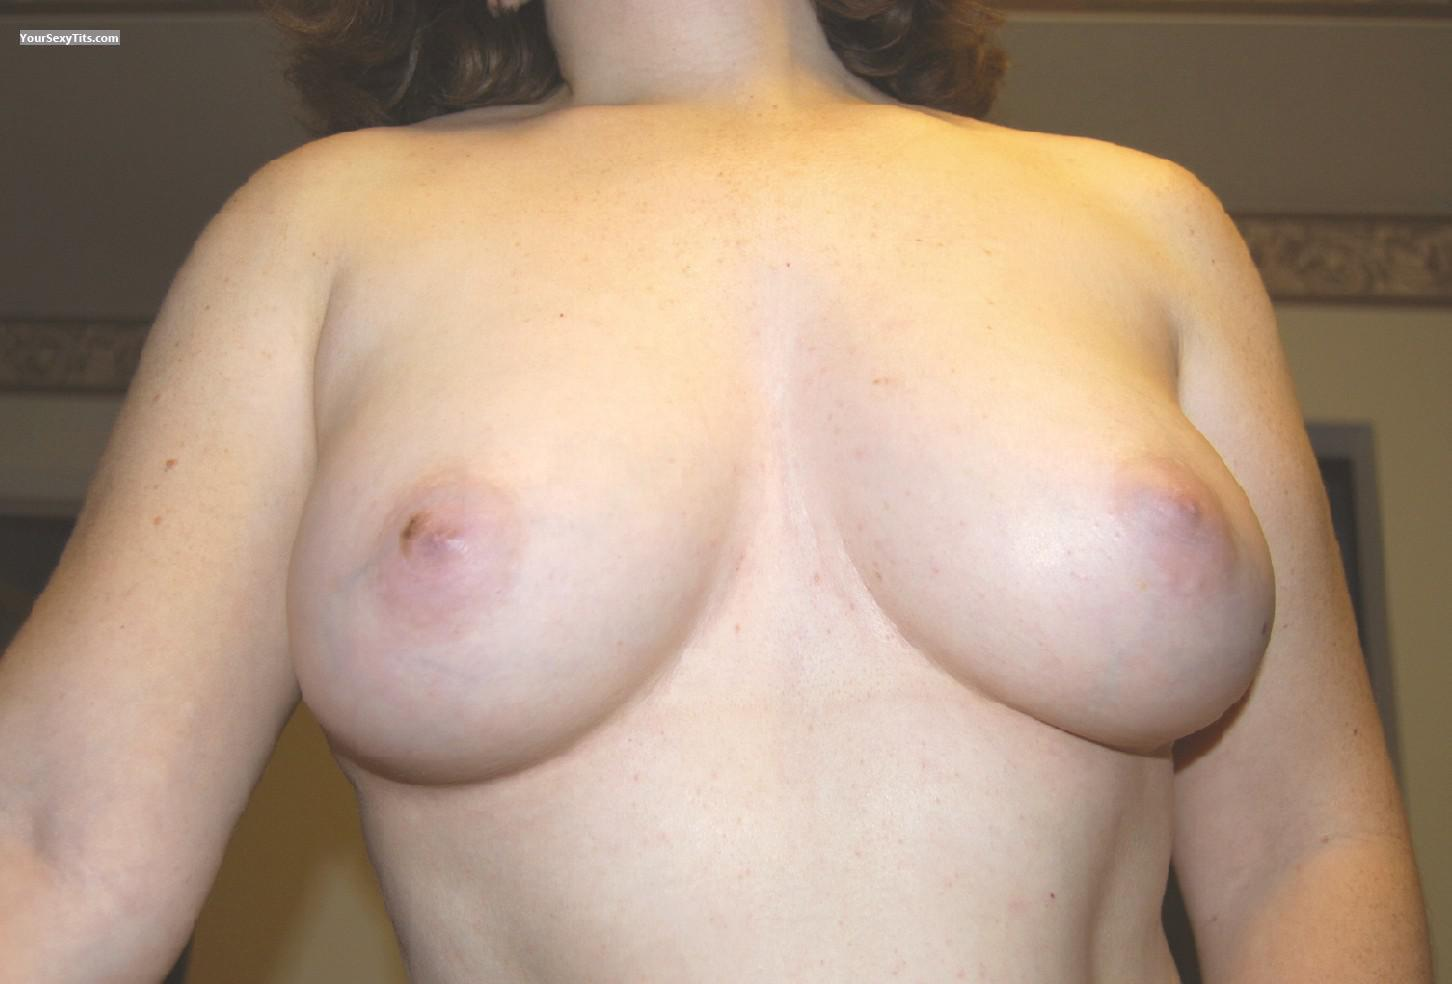 Medium Tits Of My Wife Kacey